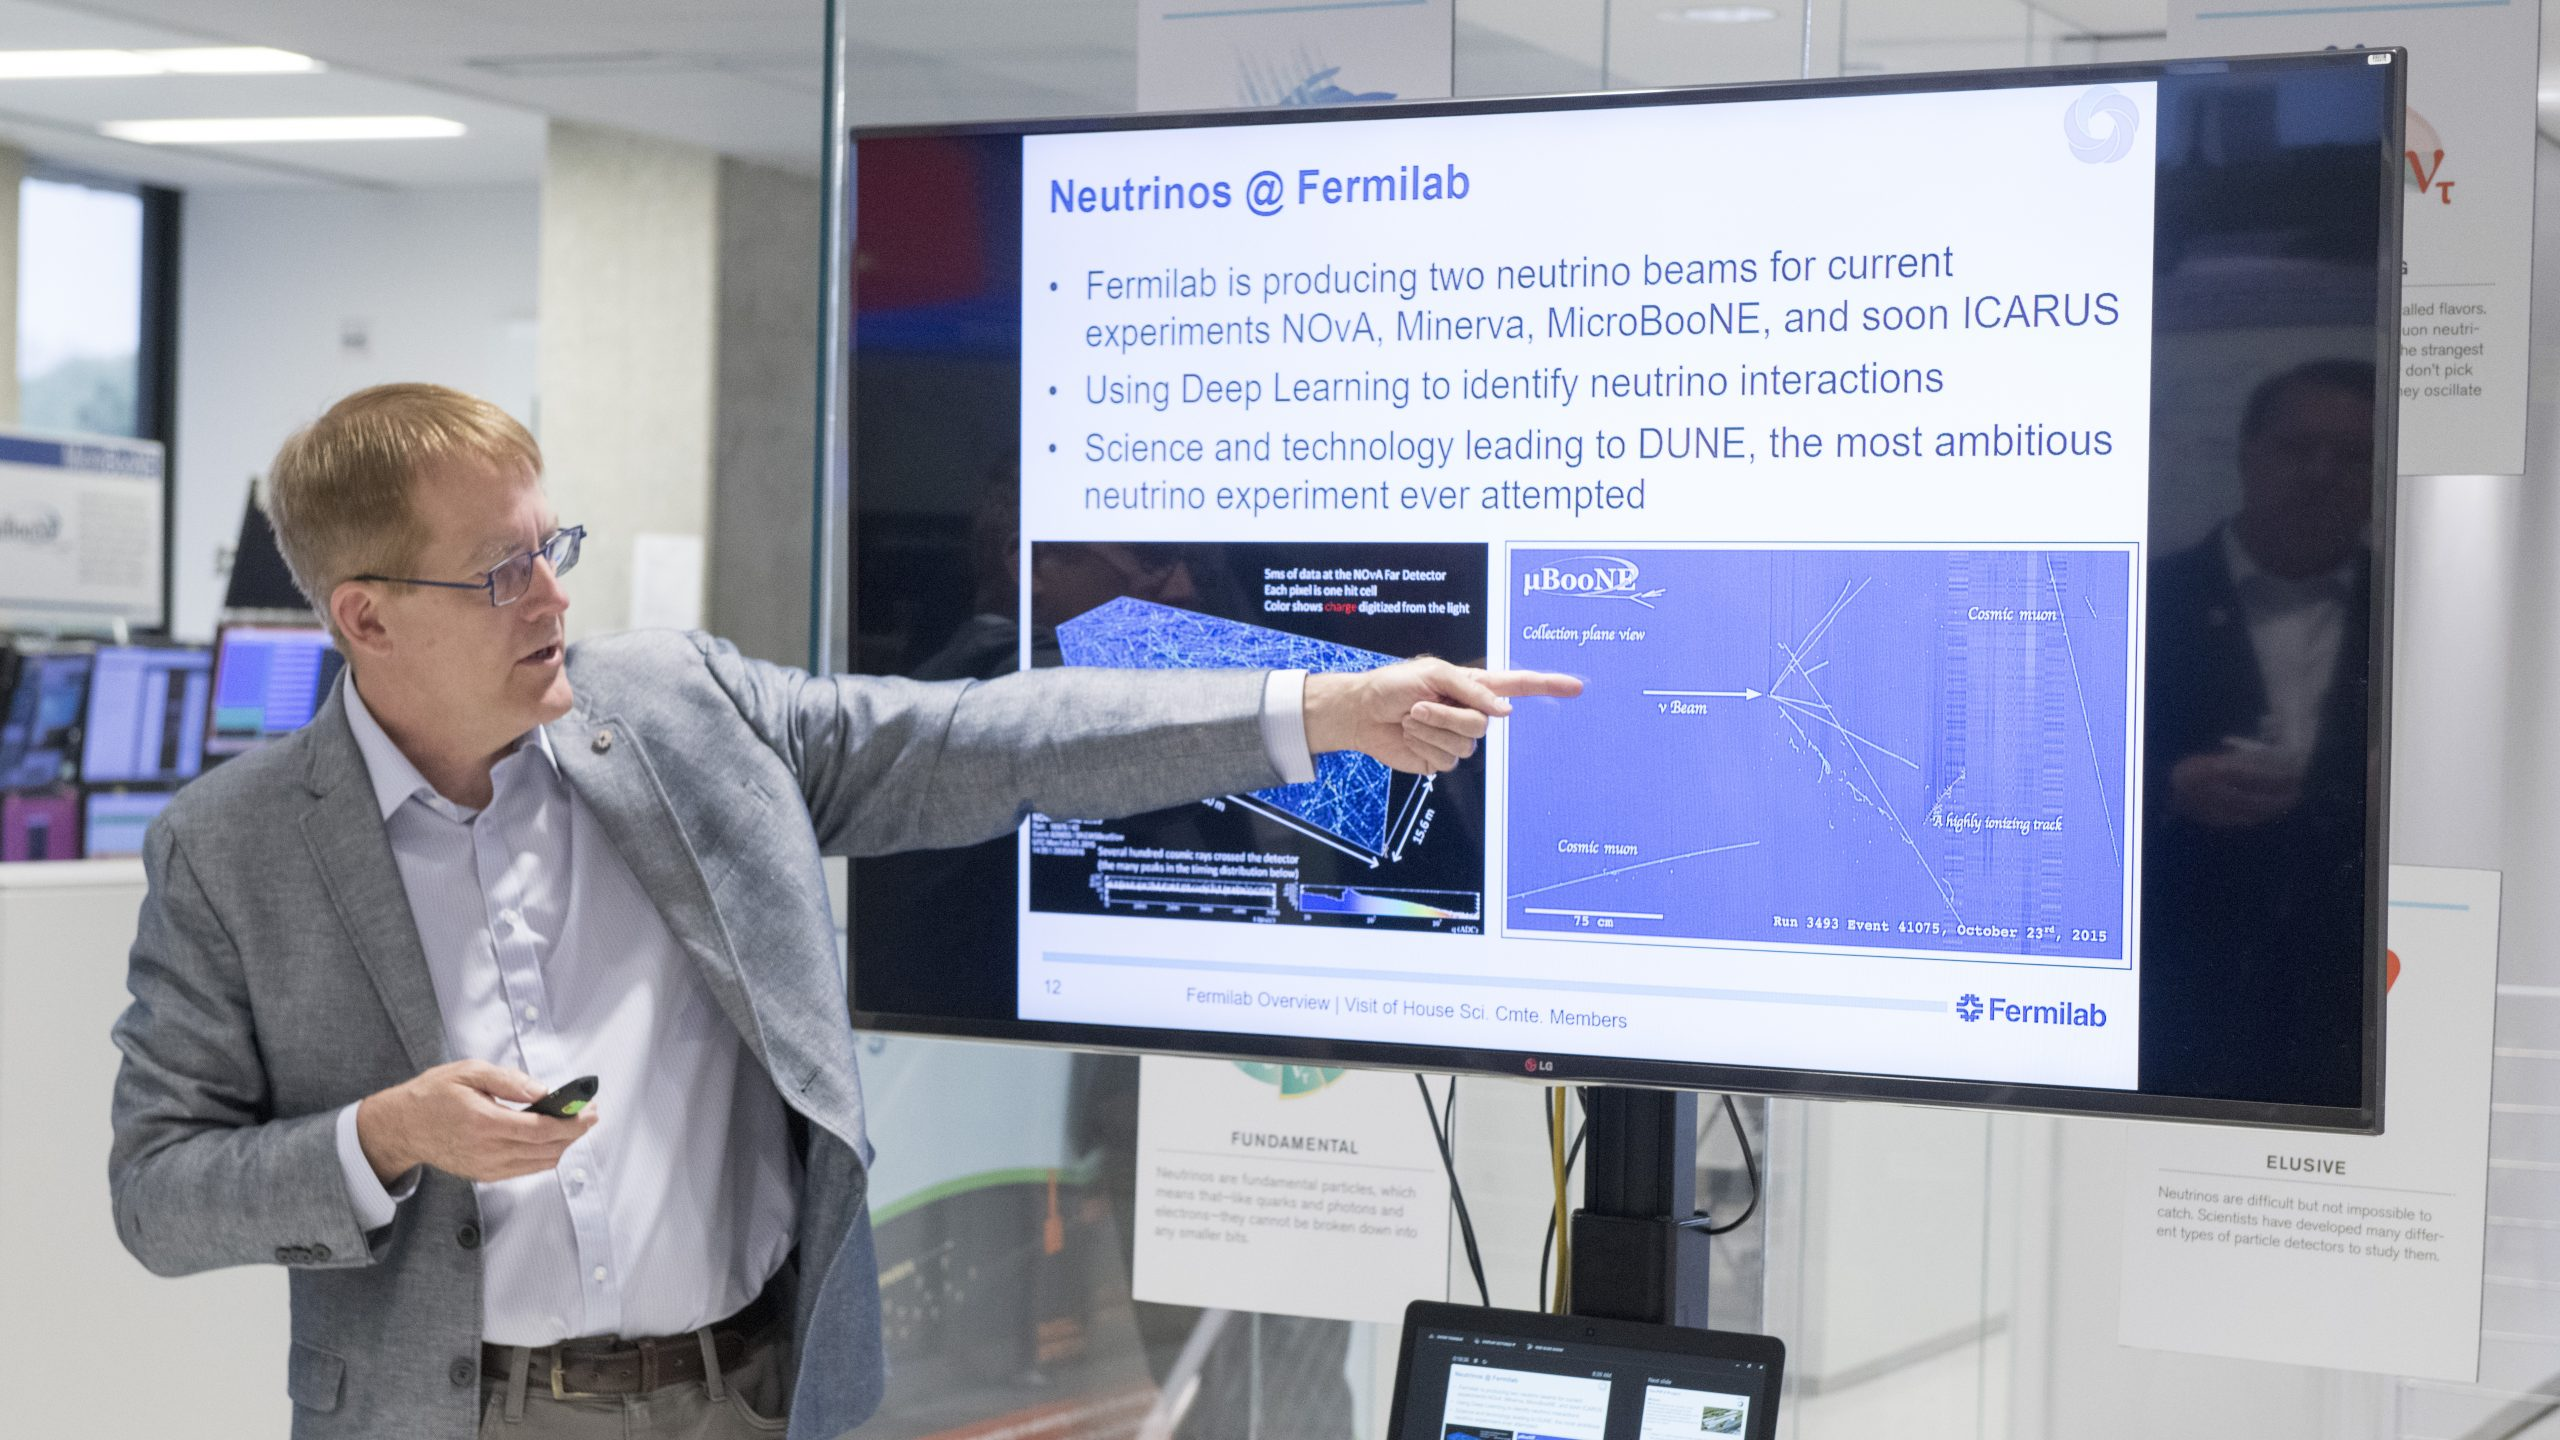 Chief Research Officer Joe Lykken provided an overview of Fermilab's research program. Photo: Reidar Hahn